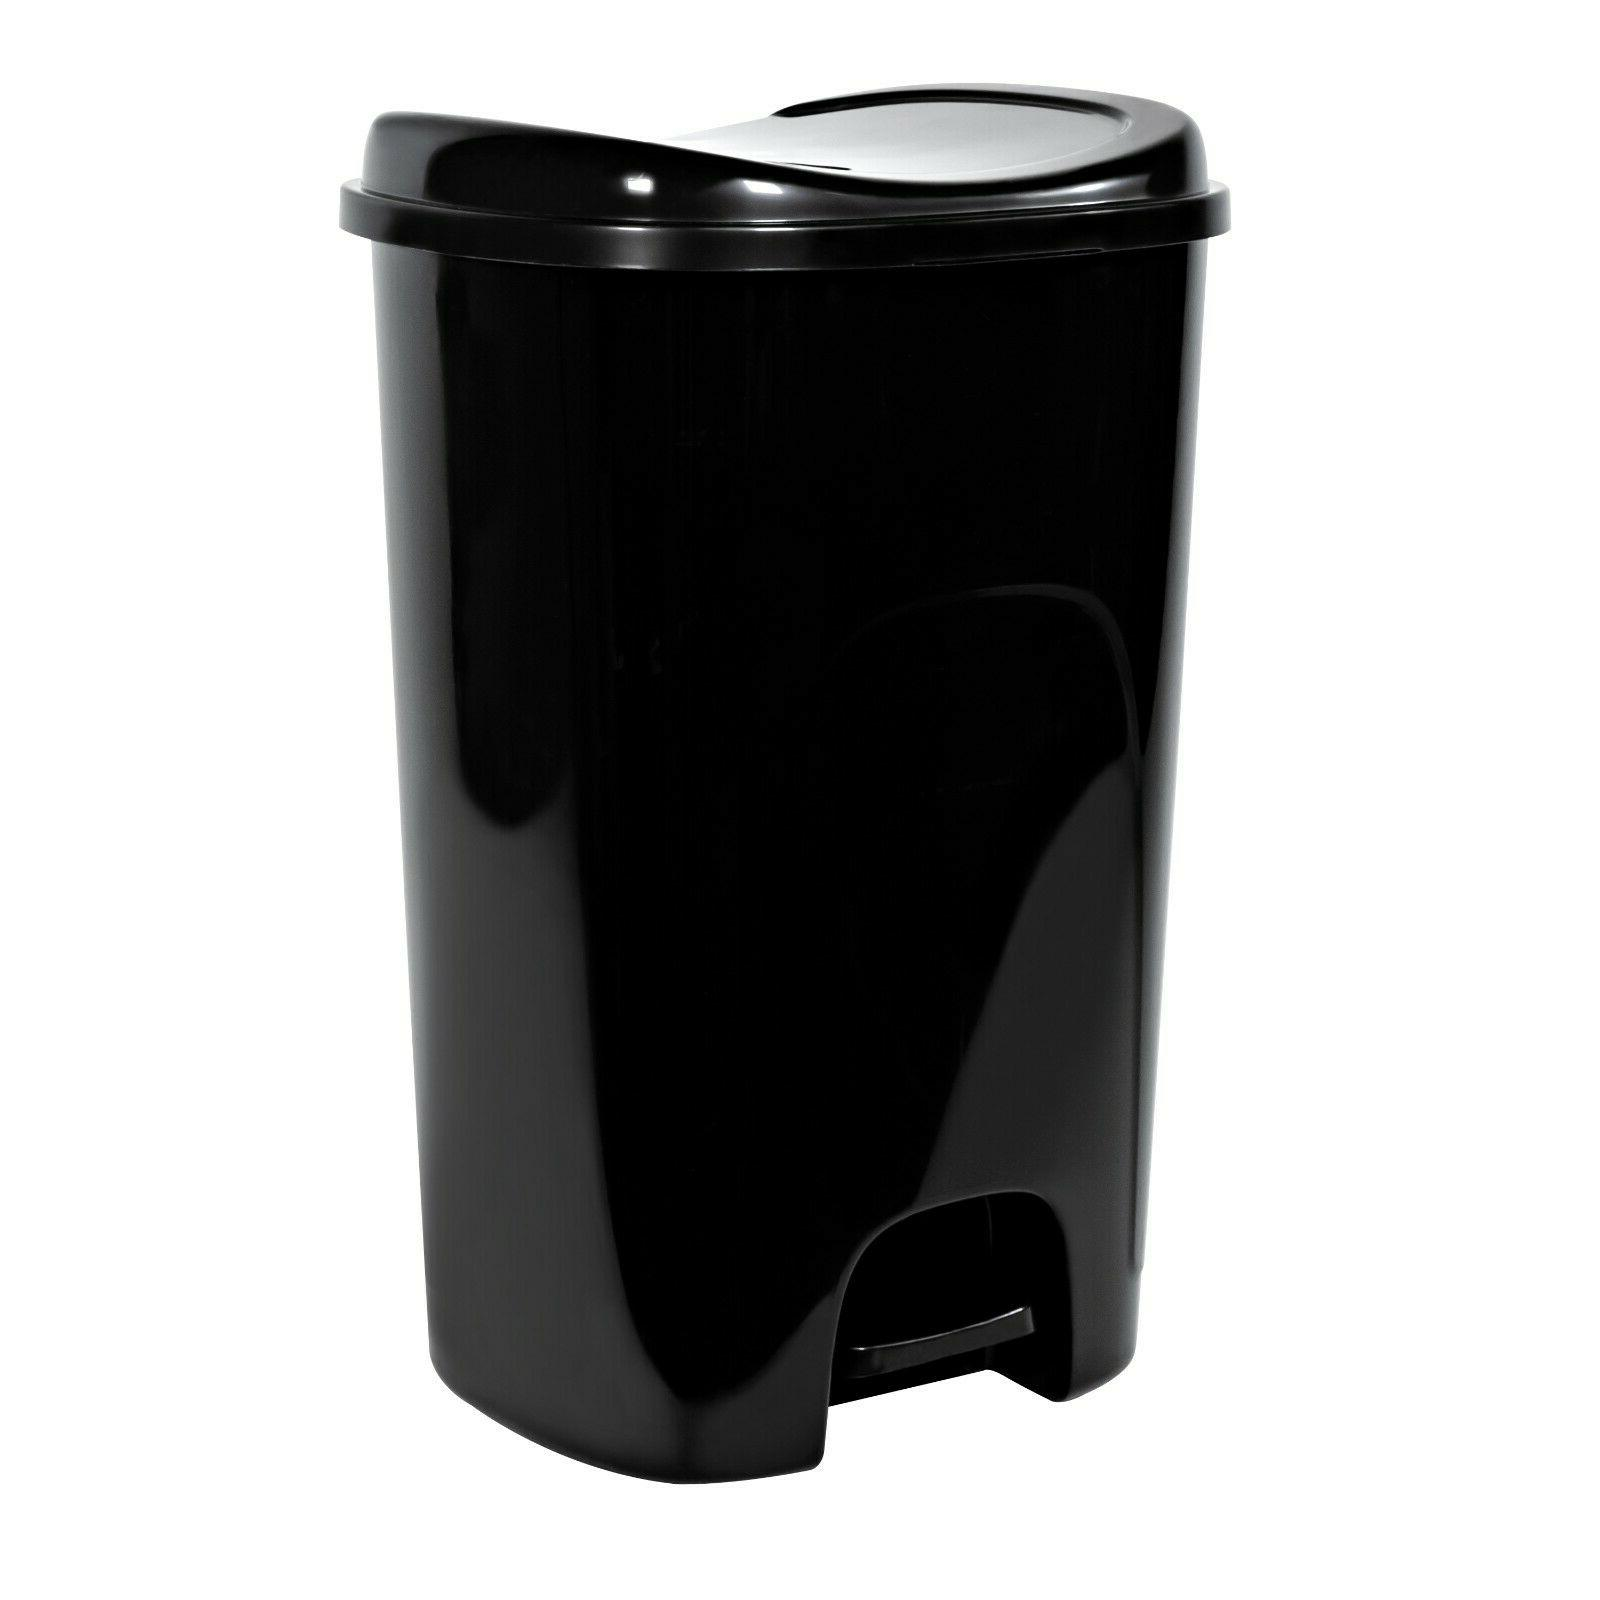 Step-On 13-Gallon Plastic Trash Can Hands Free Home Kitchen